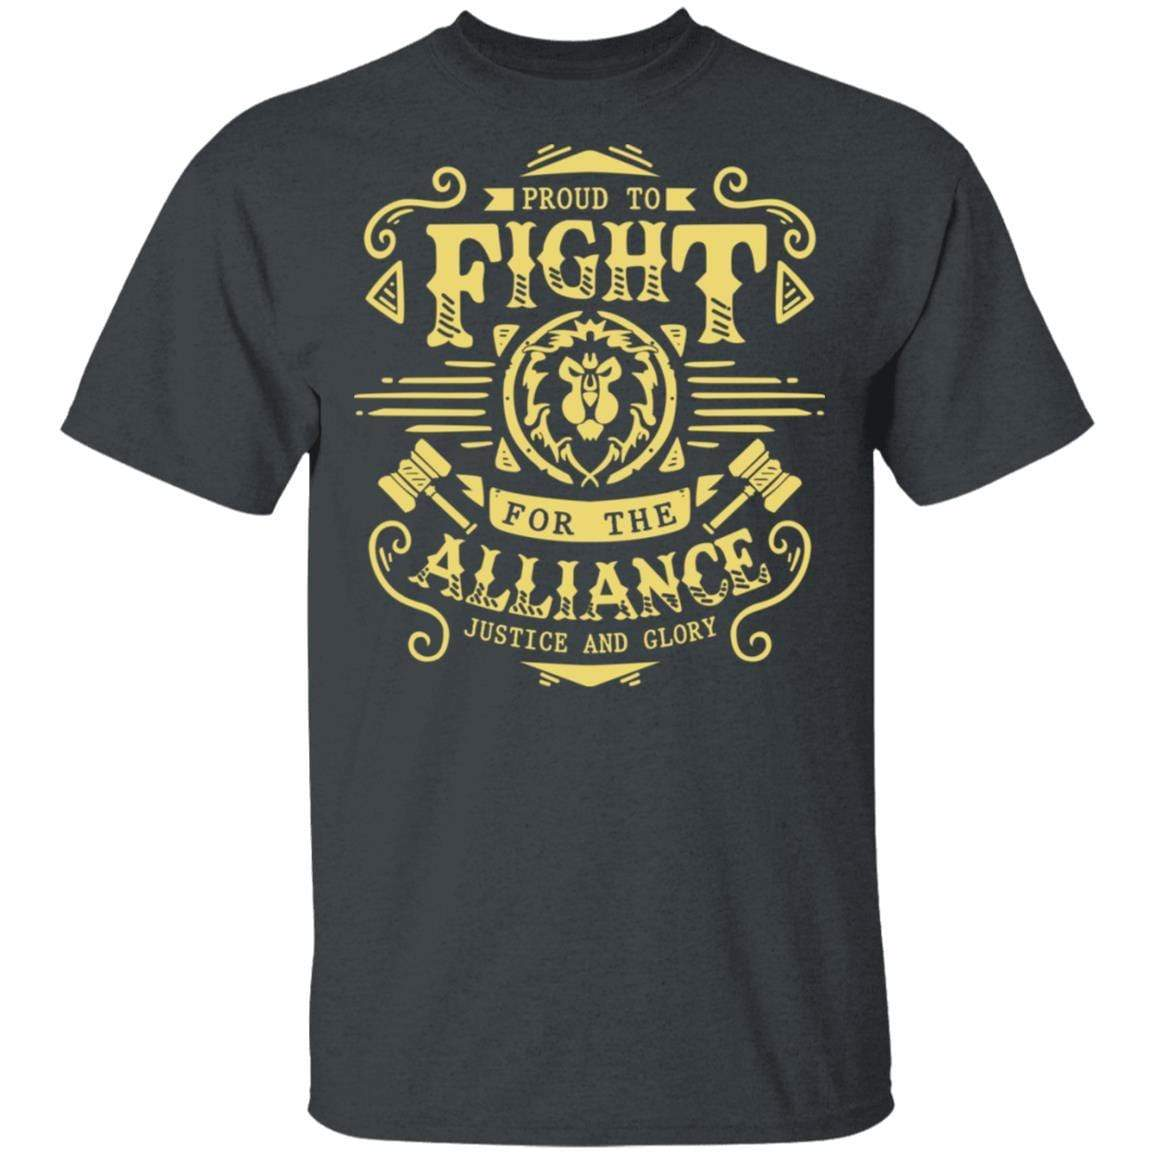 Proud To Fight For The Alliance Justice And Glory T-Shirts, Hoodies 1049-9957-88445022-48192 - Tee Ript